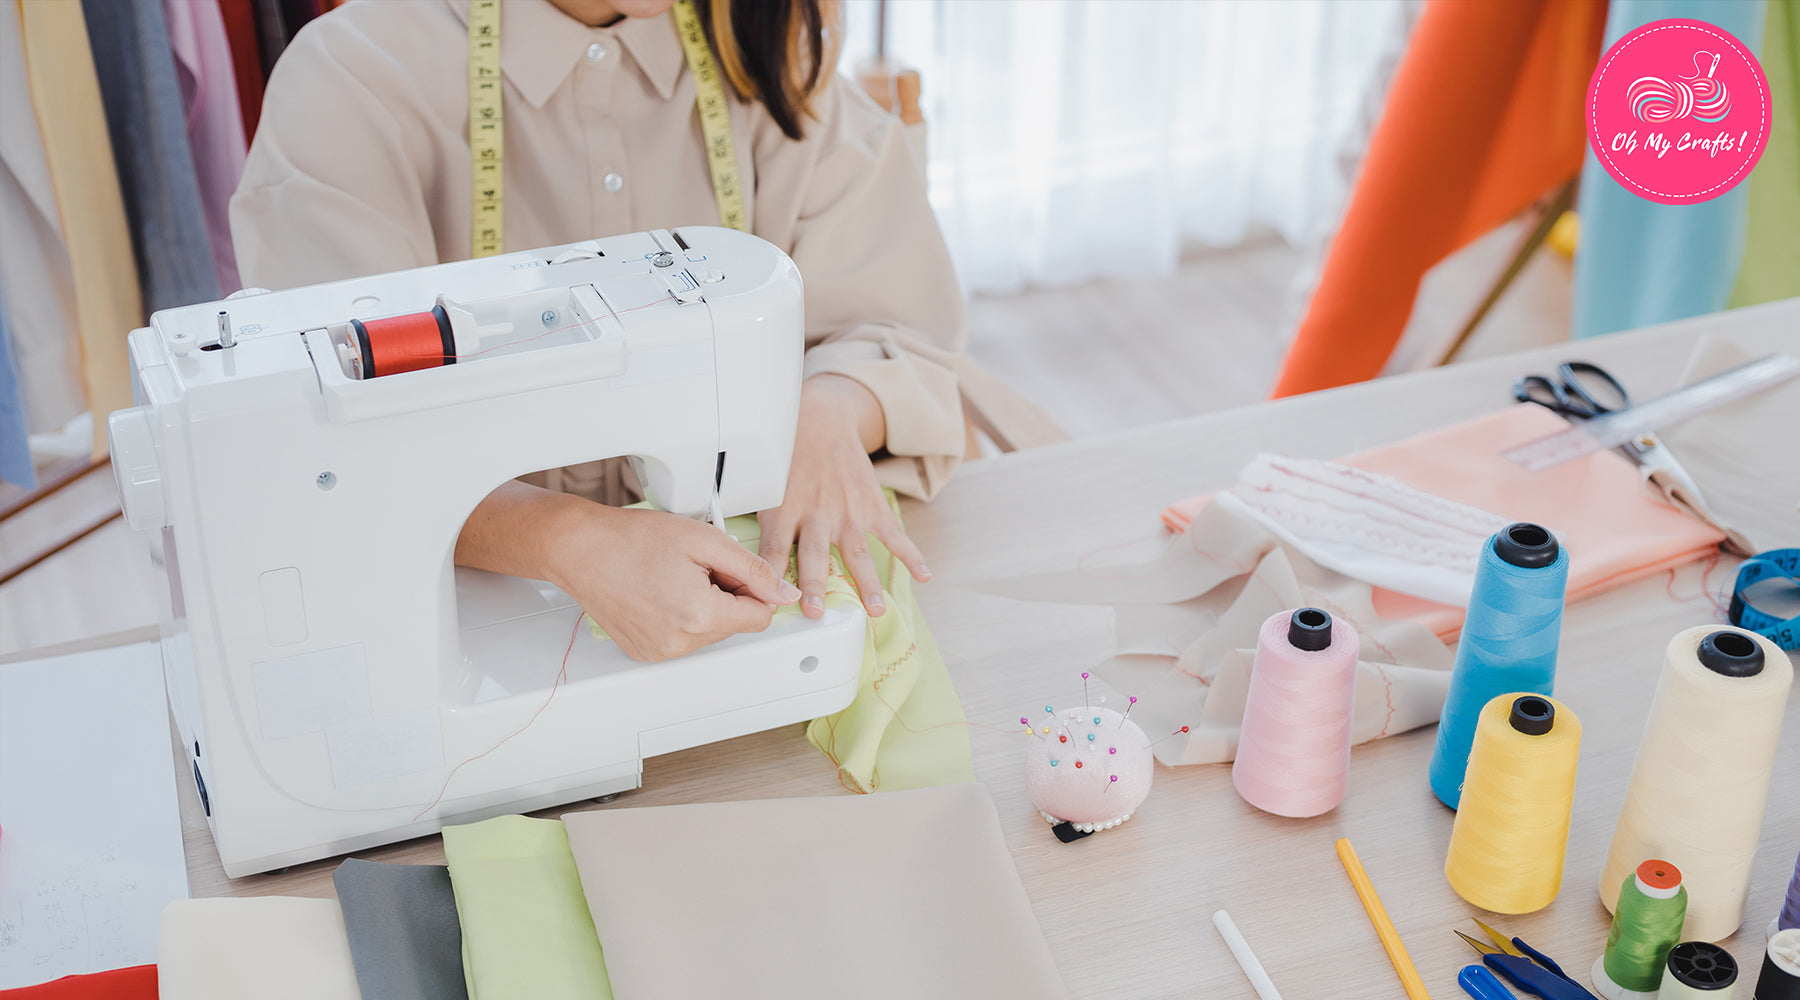 WHAT BEGINNERS SHOULD KNOW ABOUT SEWING MACHINES